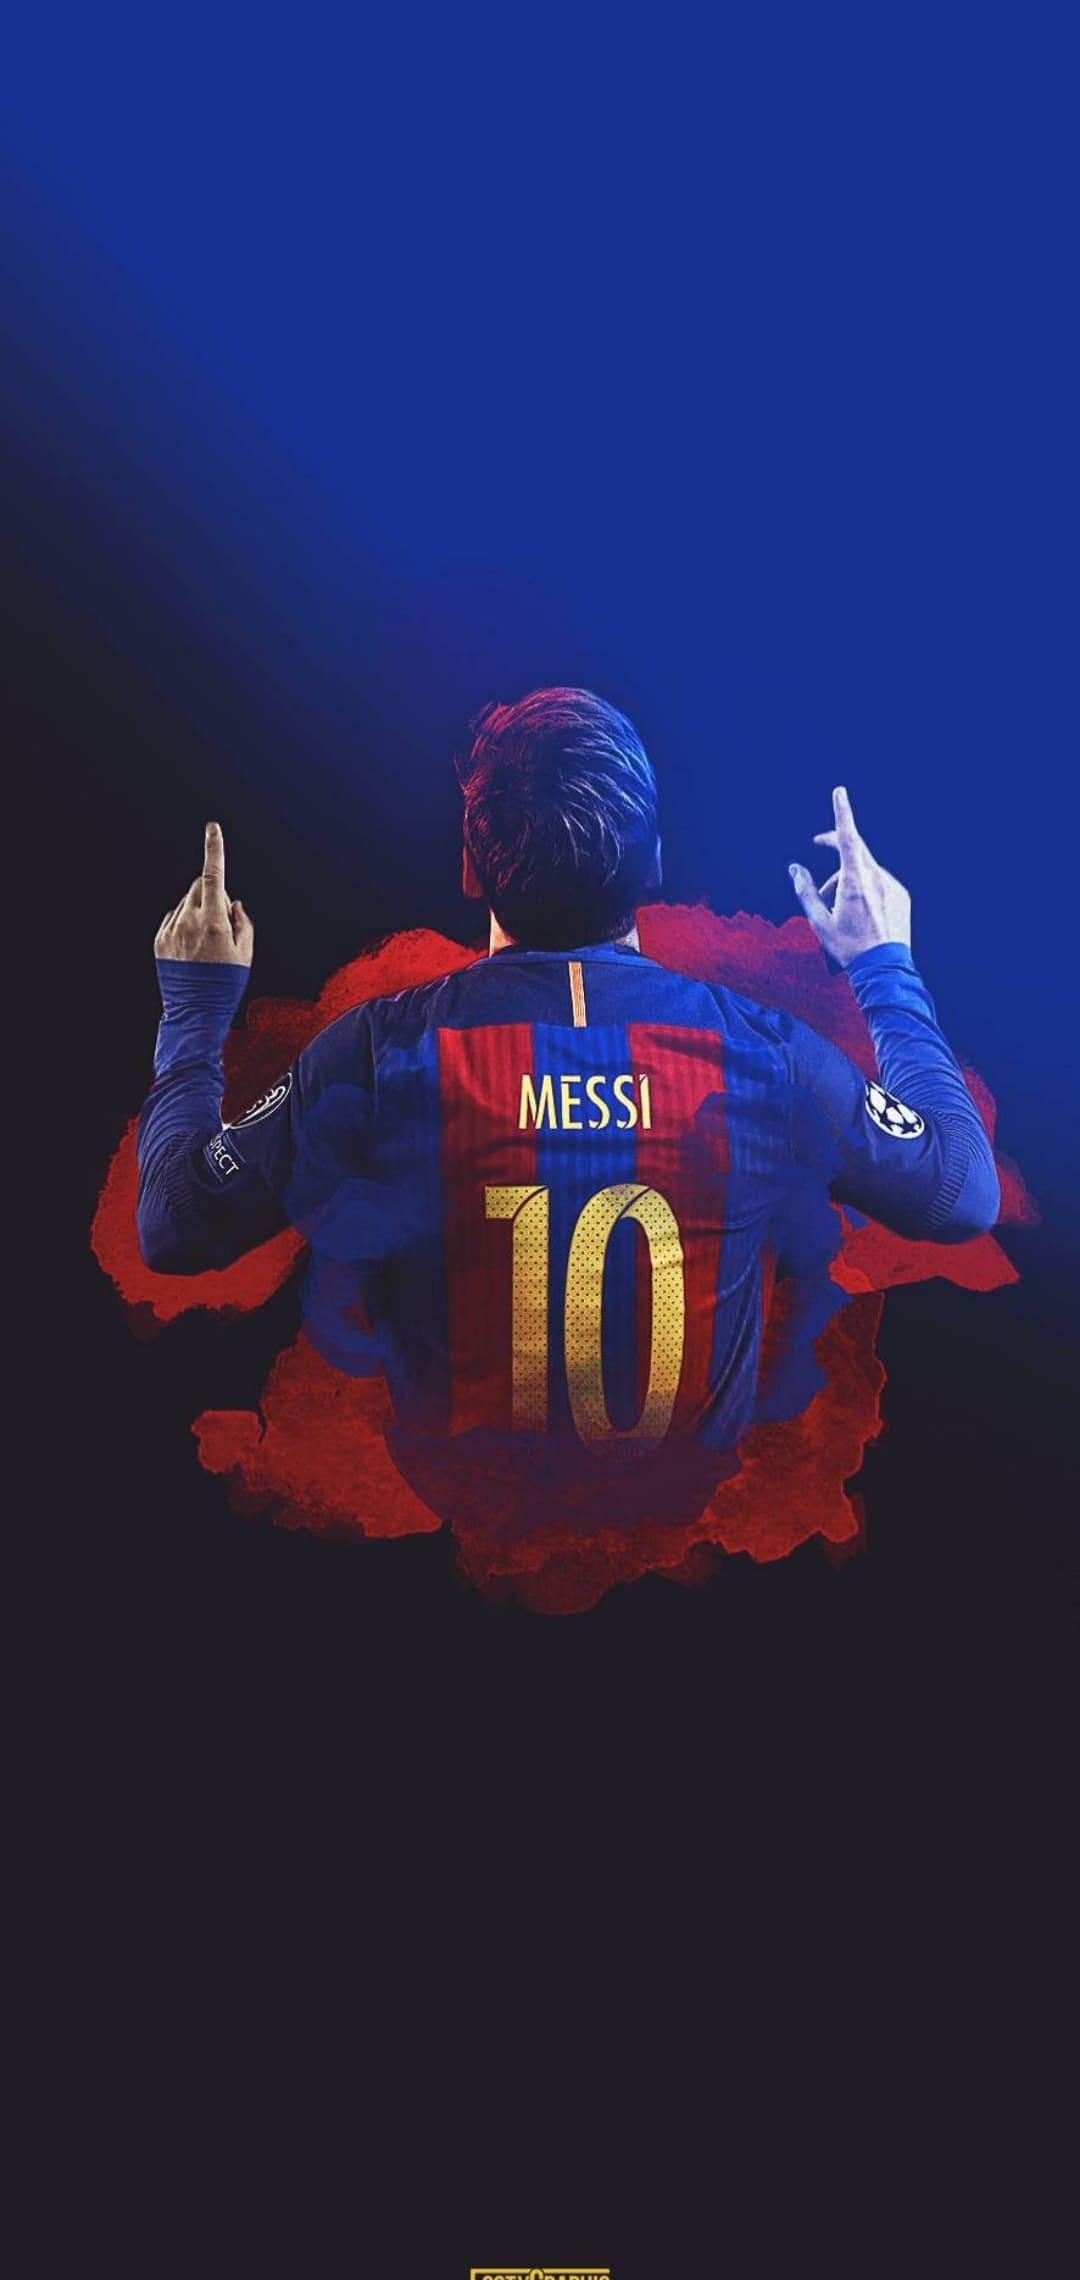 Messi Wallpapers - Lionel Messi Wallpaper 2020 , HD Wallpaper & Backgrounds